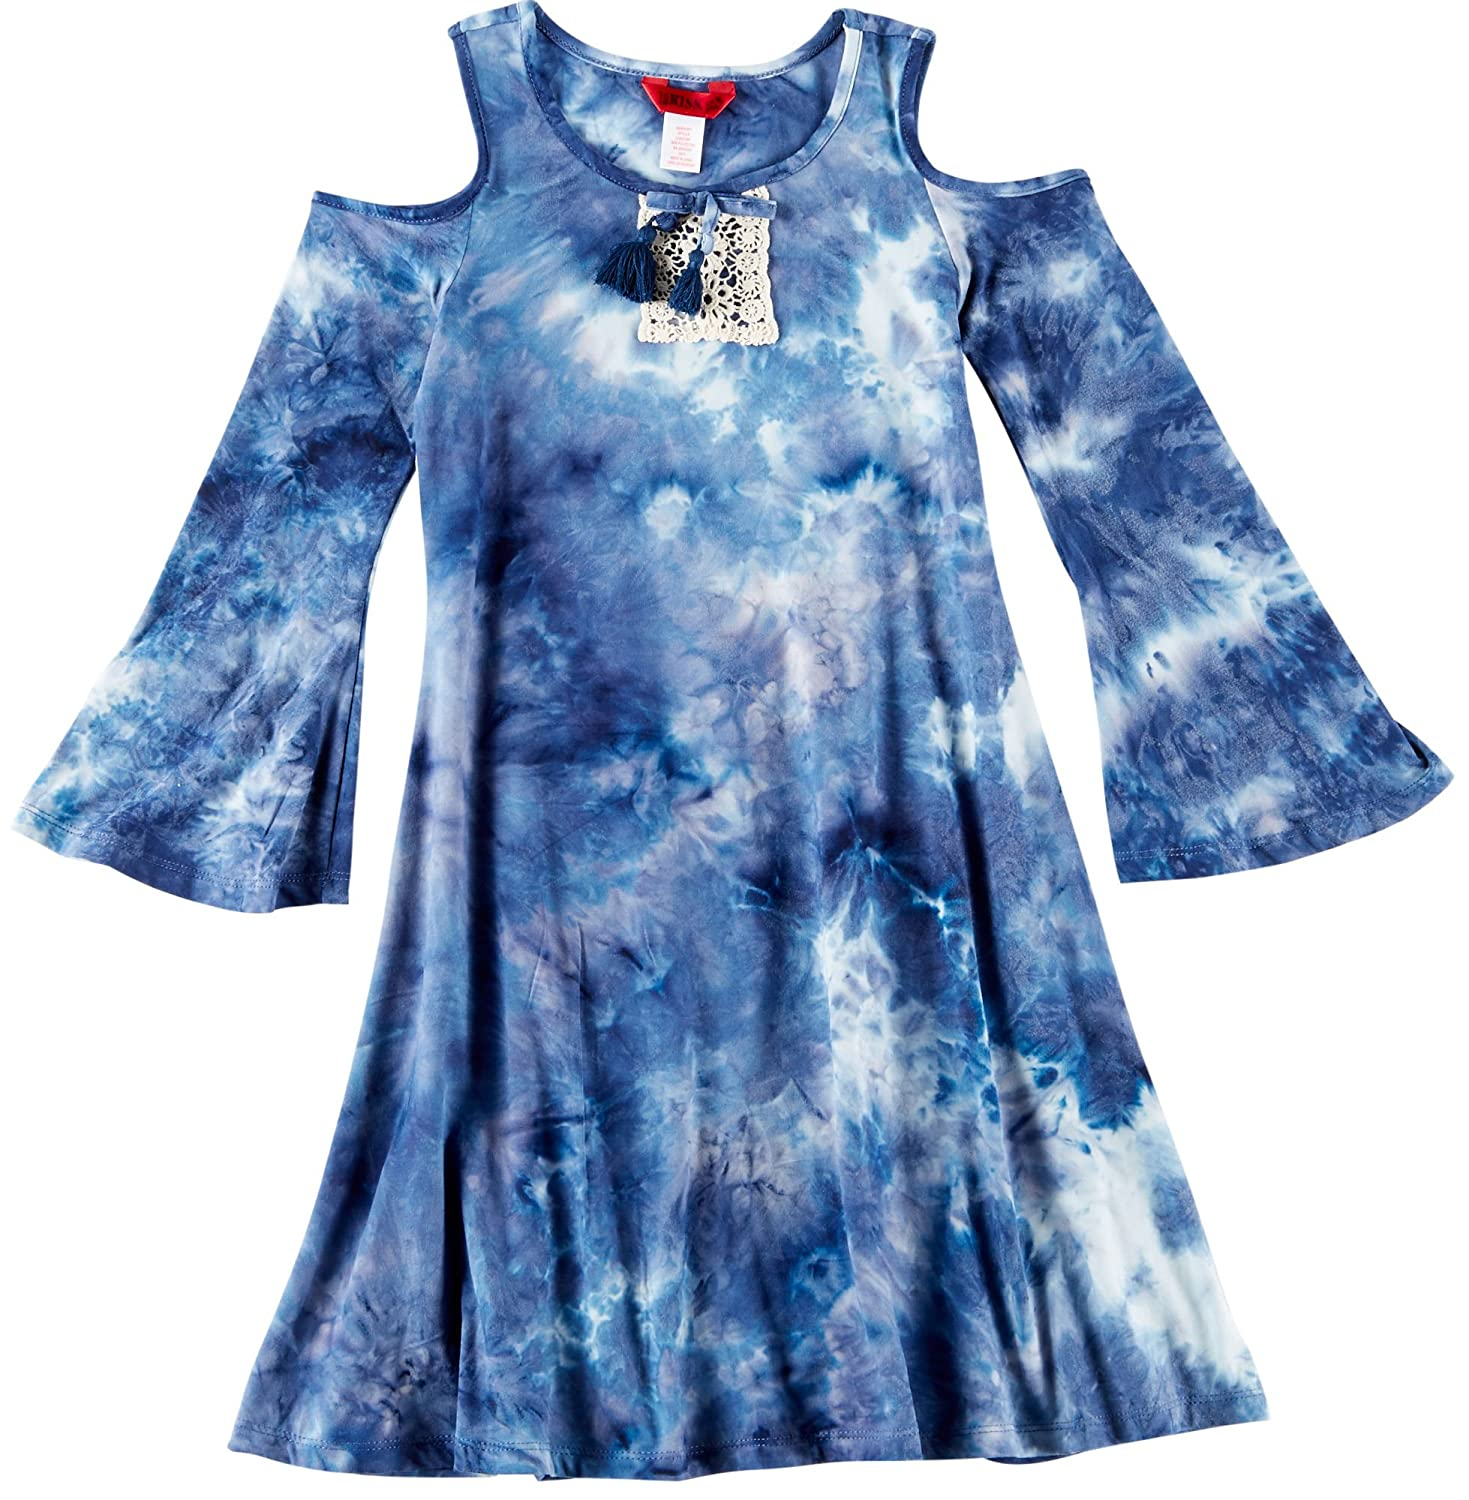 1ST KISS Big Girls Tie Dye Bell Sleeve Dress